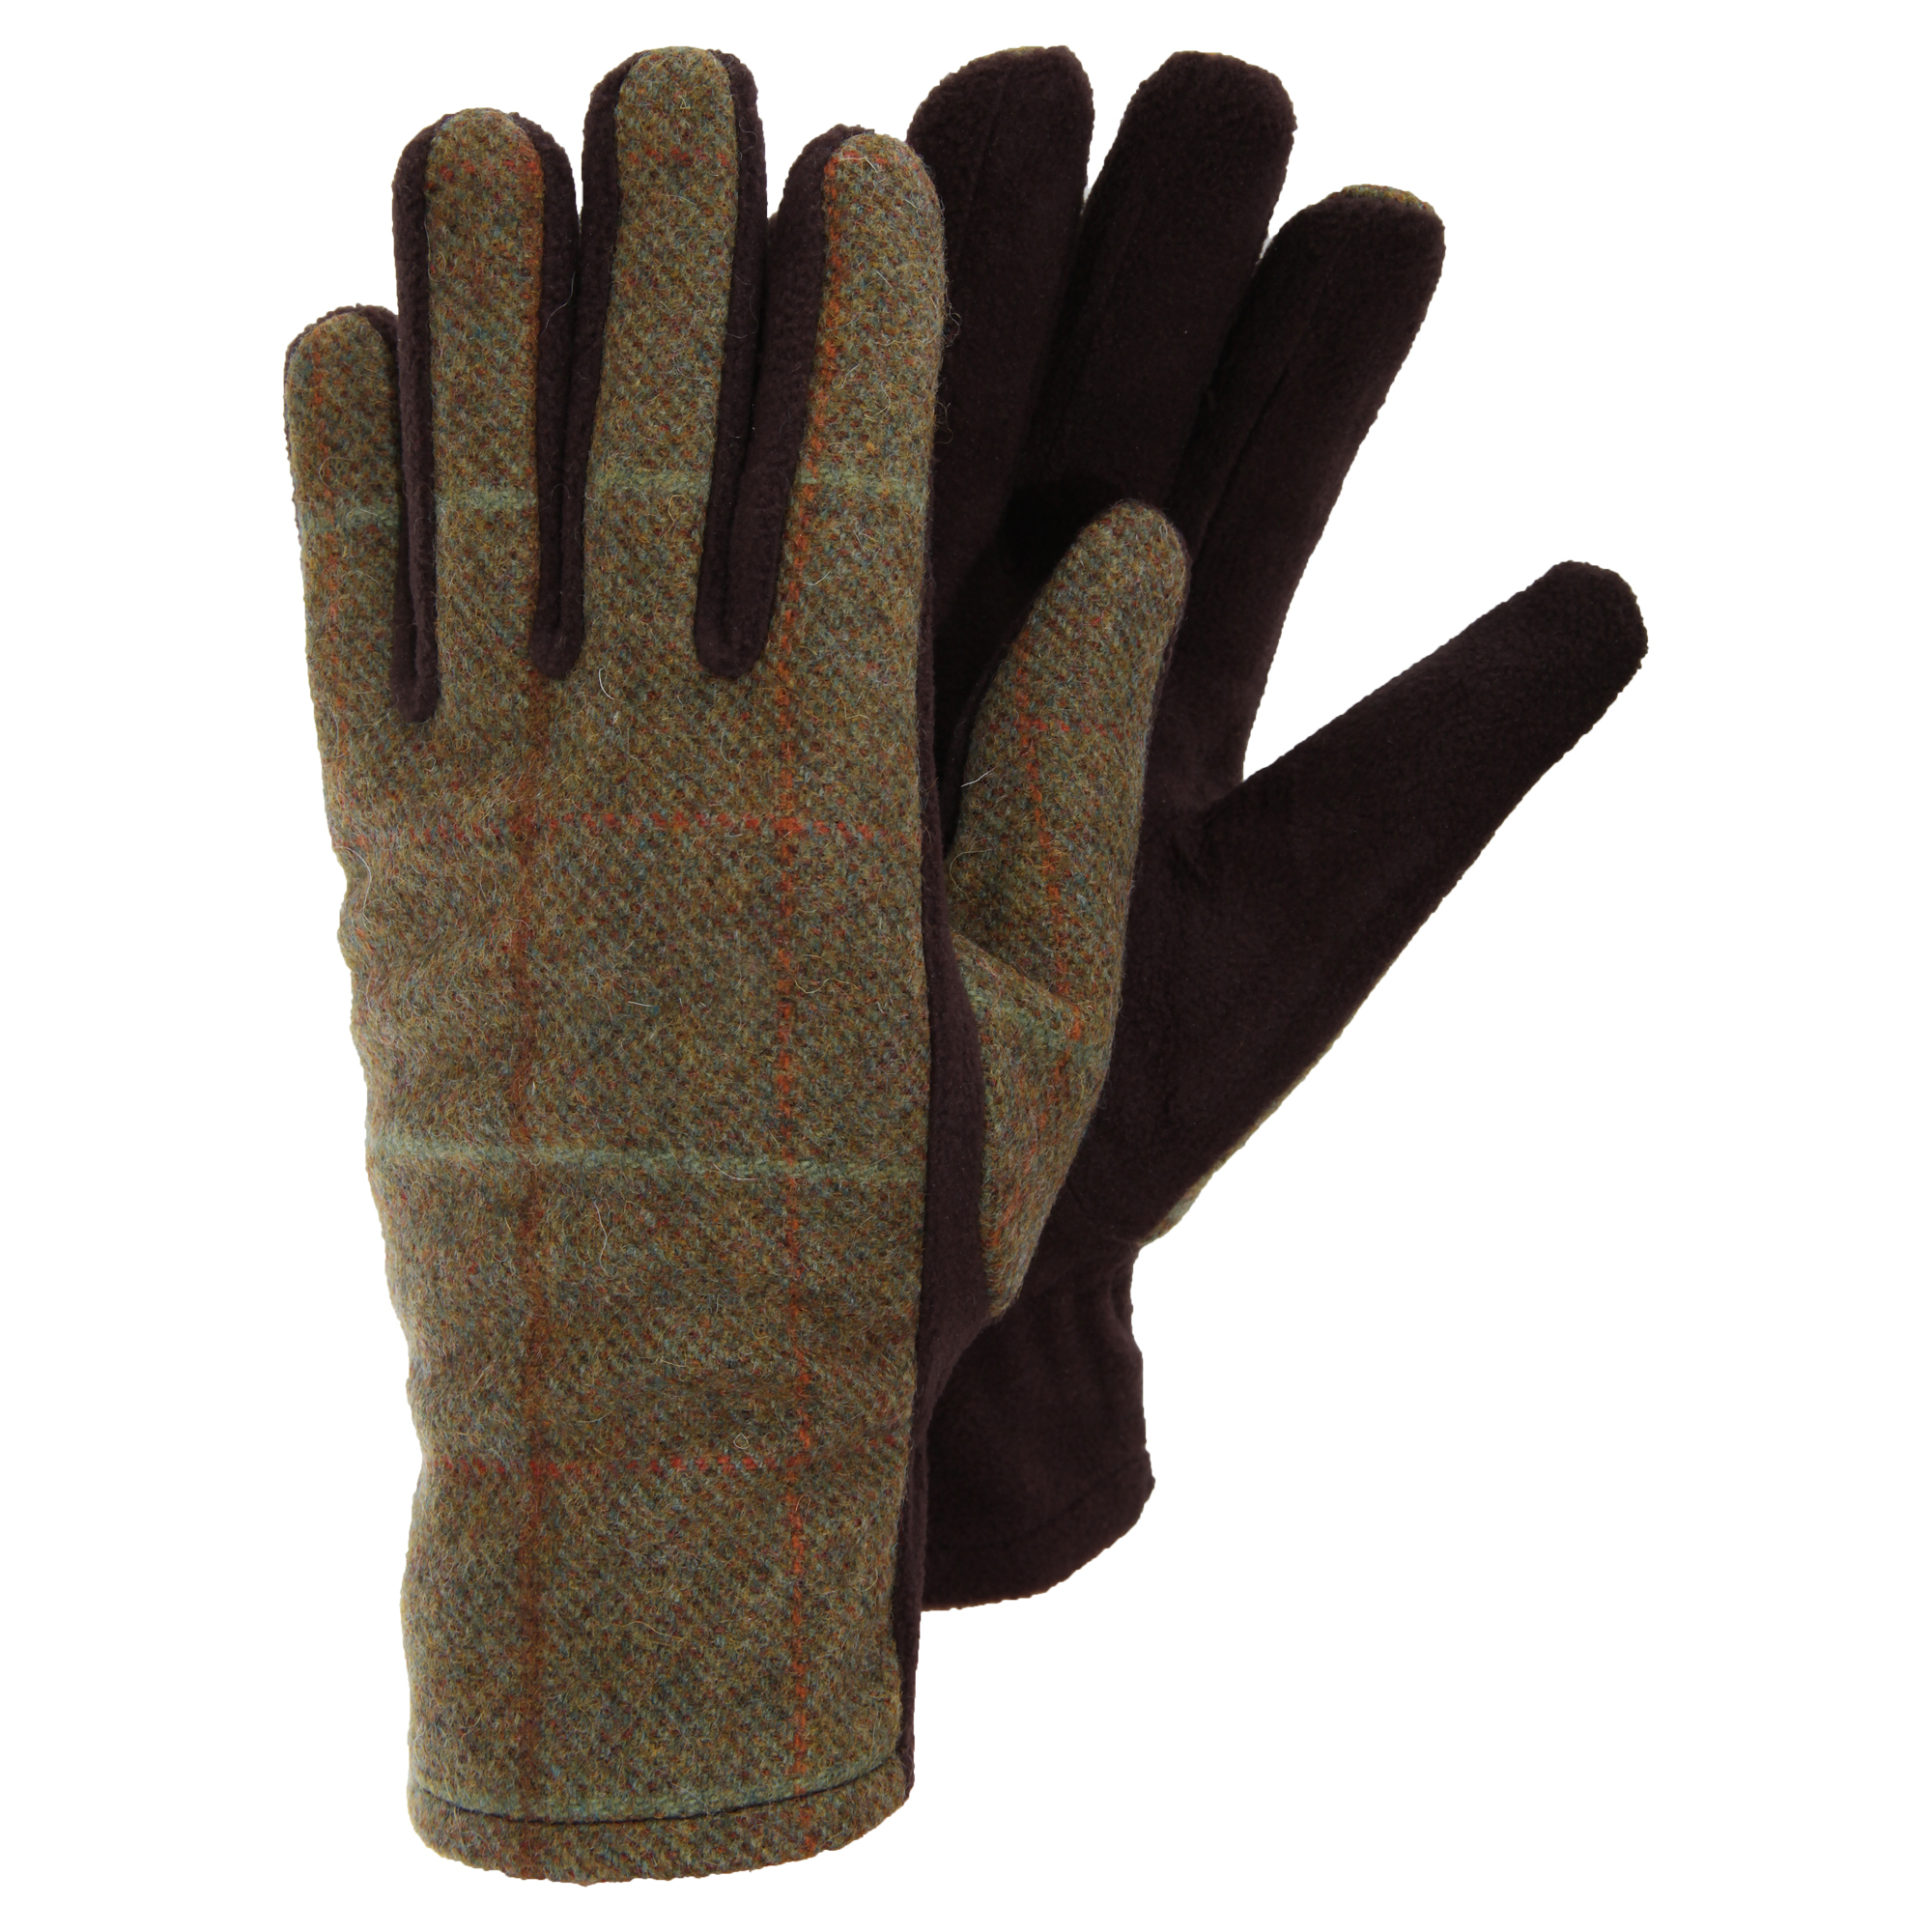 Keep fingers warm with multi functional Merino wool gloves, and glove liners for women. Featuring insulation, free movement, touch-screen pads, bulk free fit.